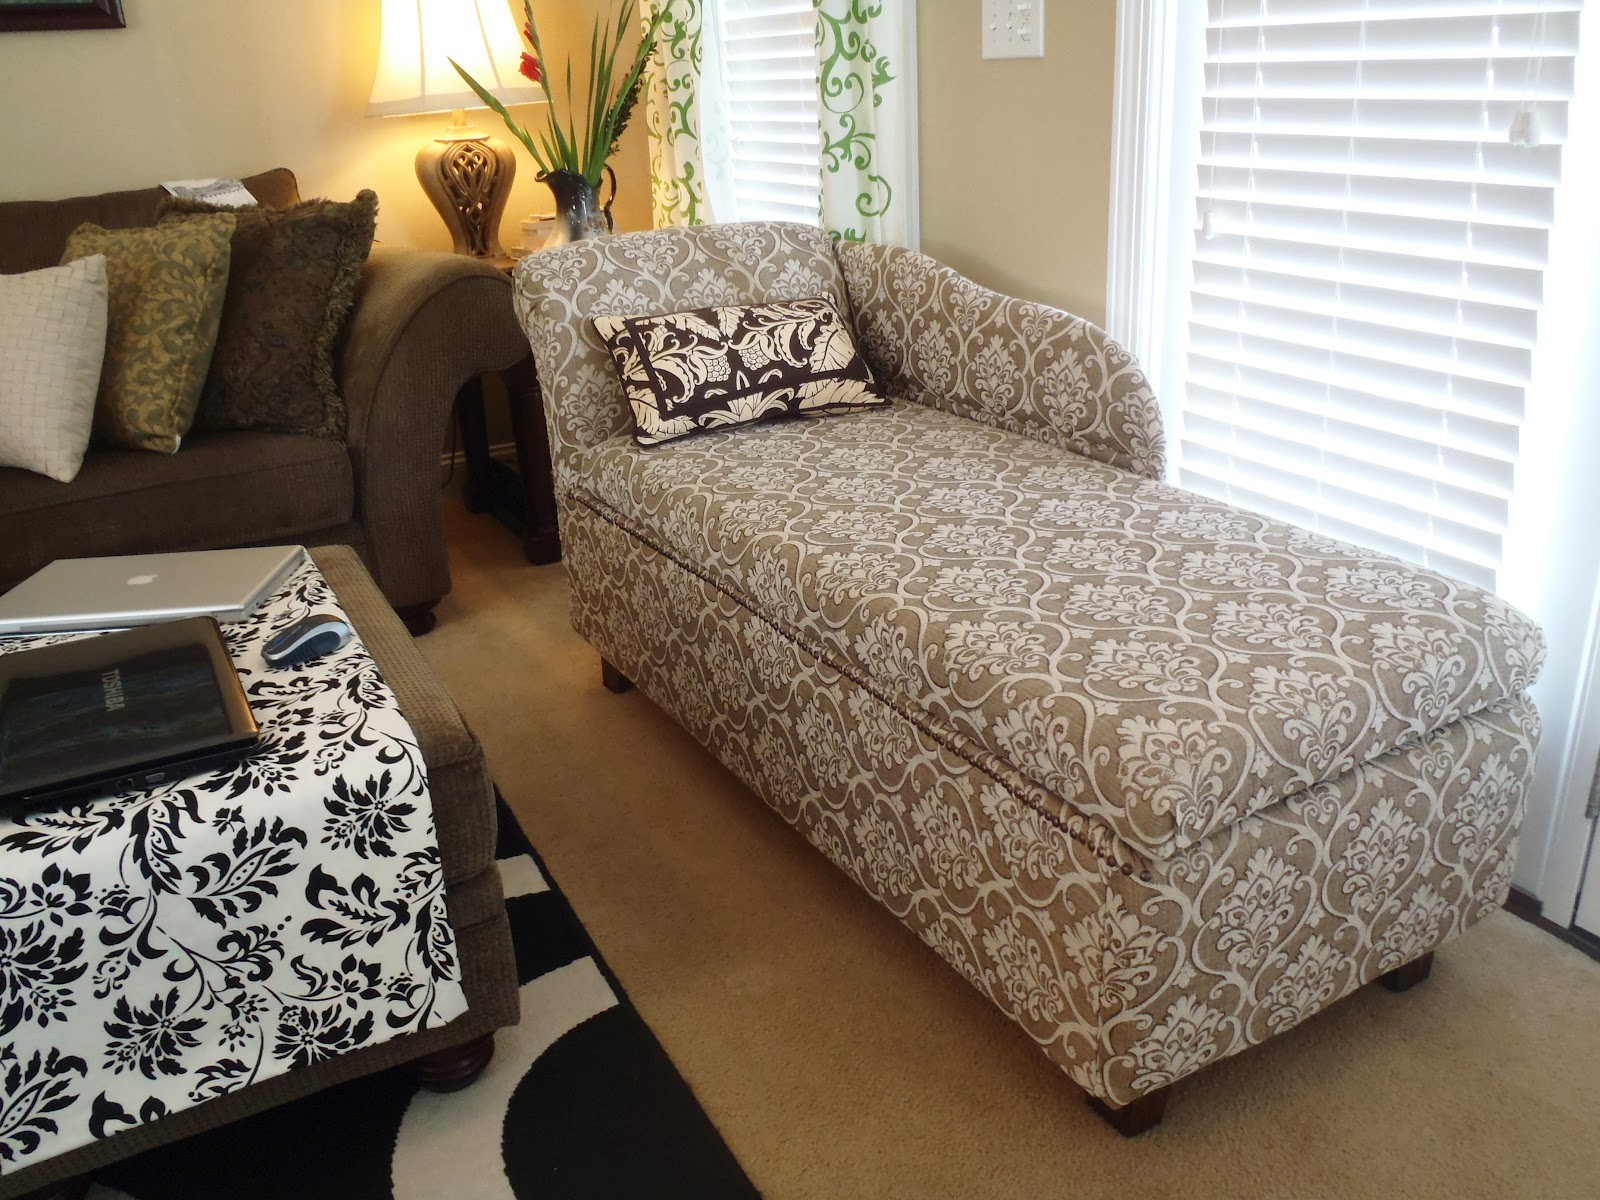 chaise lounge with storage Lazy Liz on Less: Storage chaise lounge chaise lounge with storage